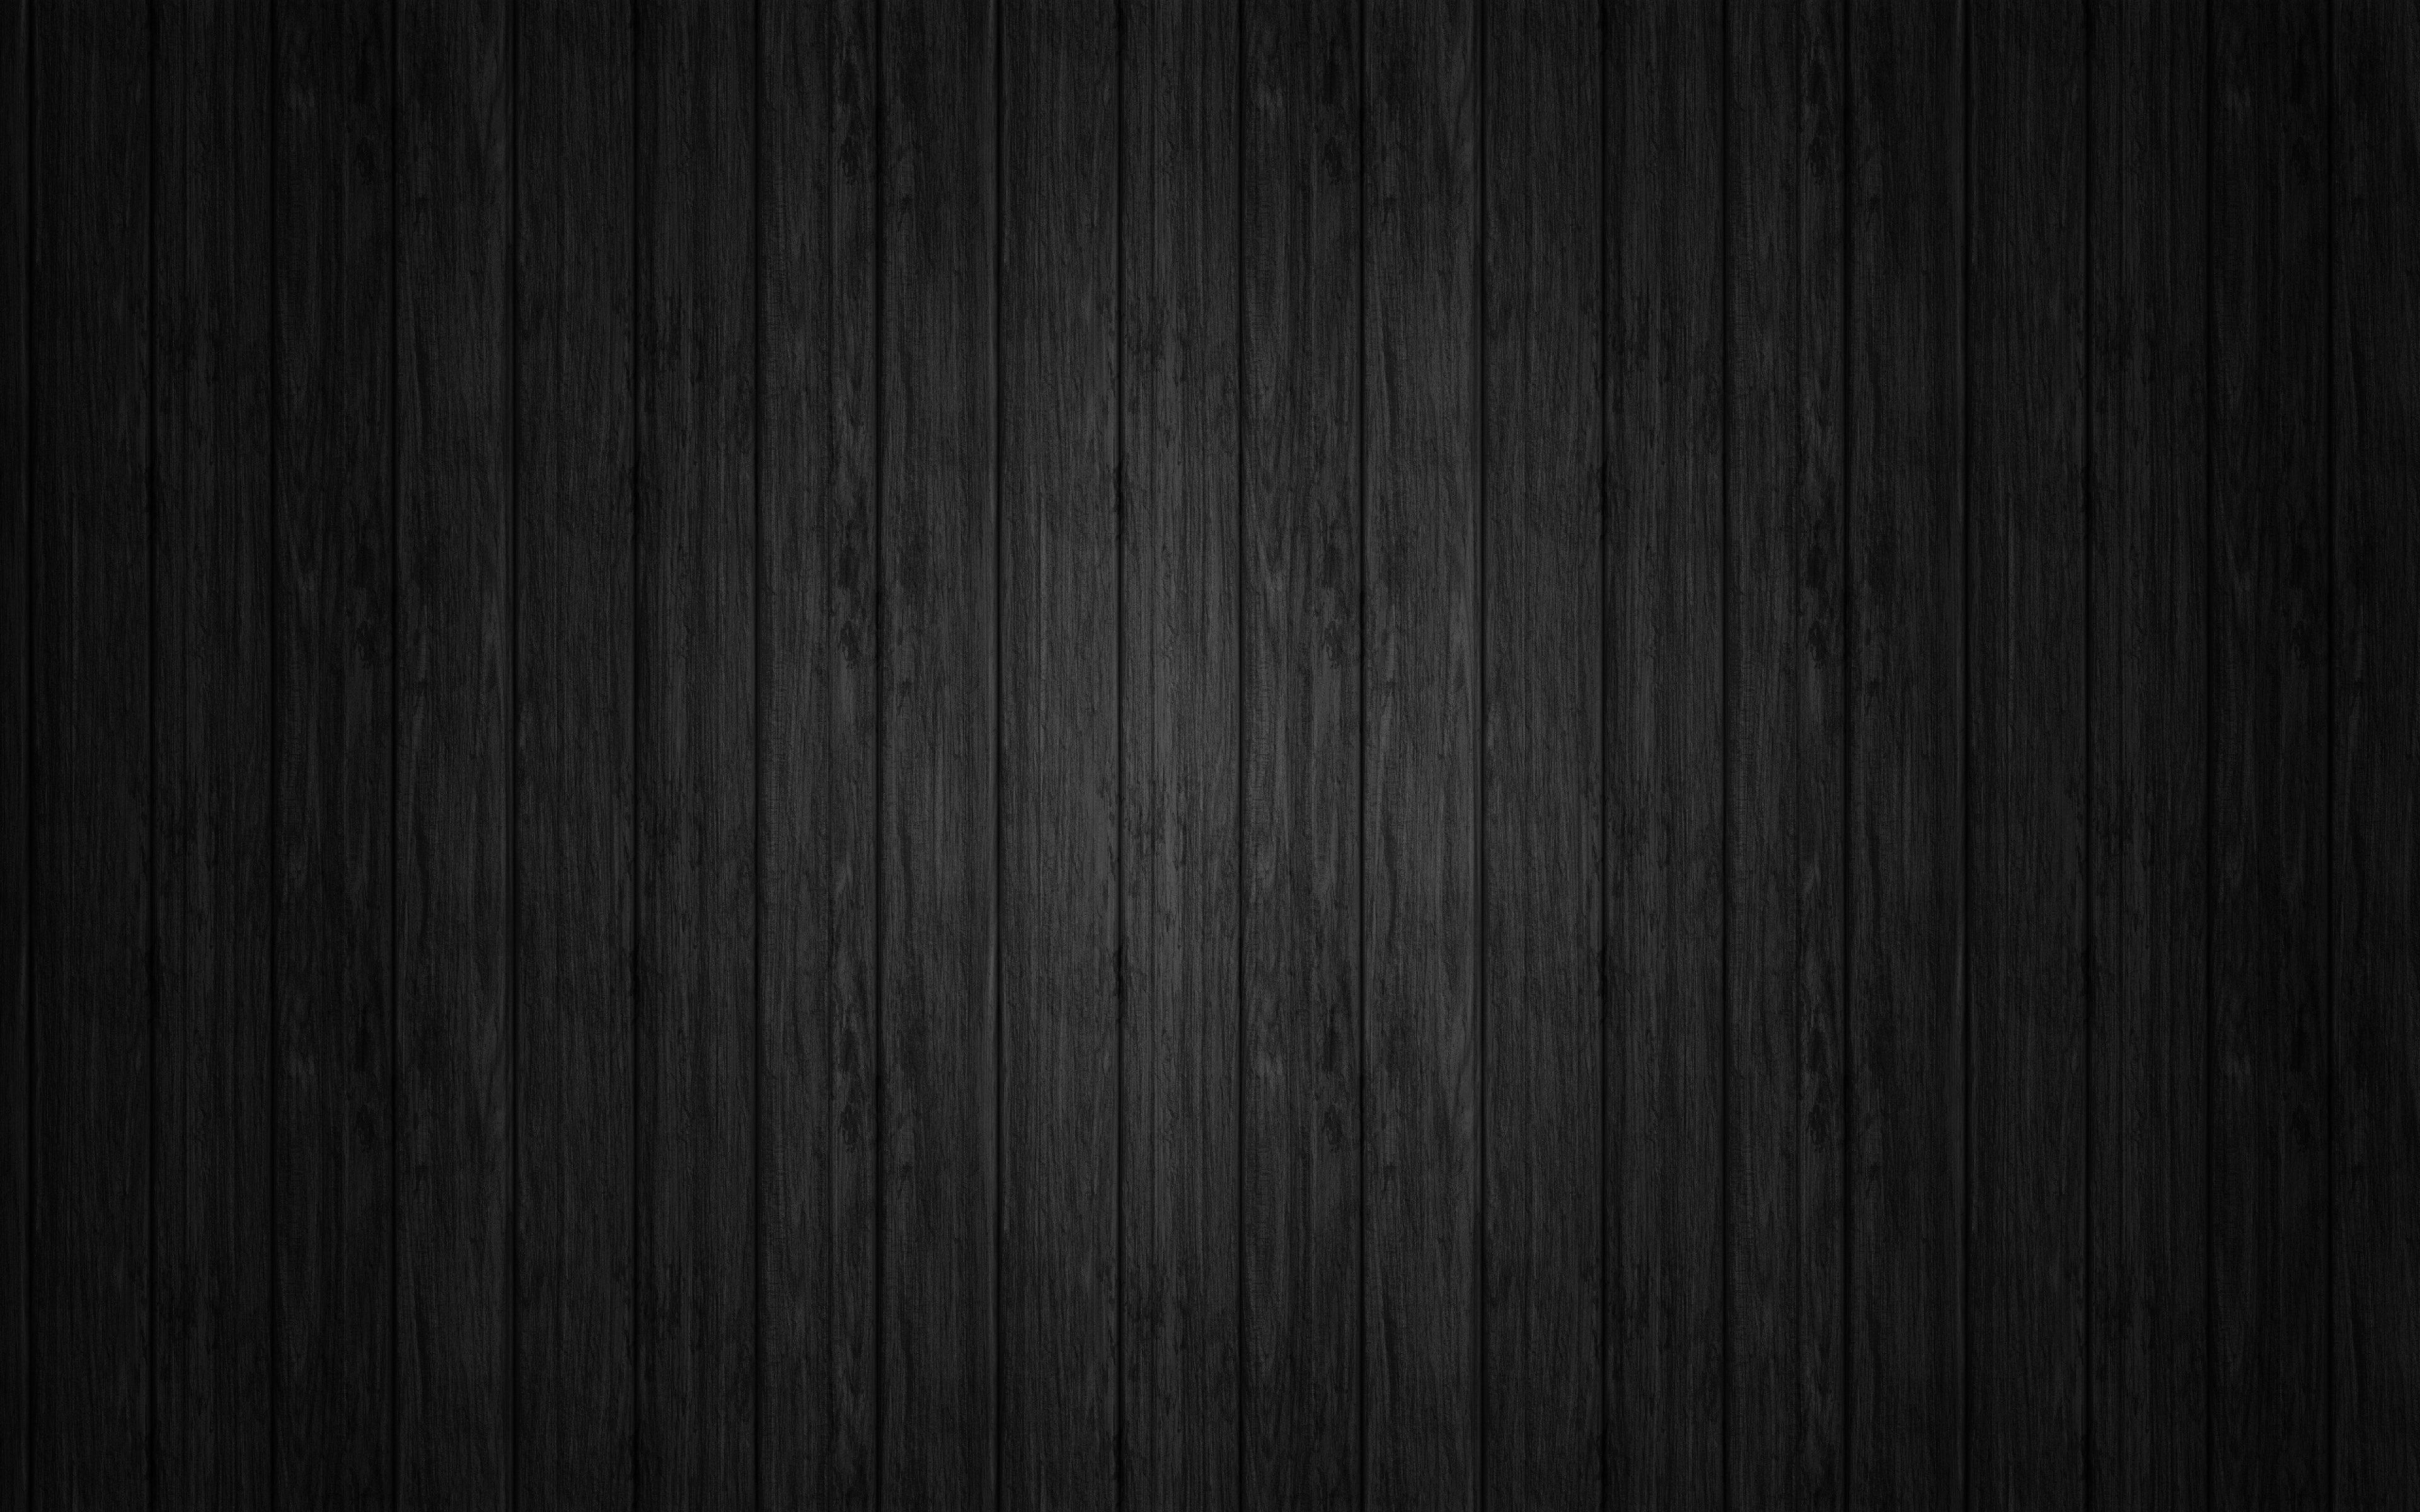 black lines stripes wood texture board background